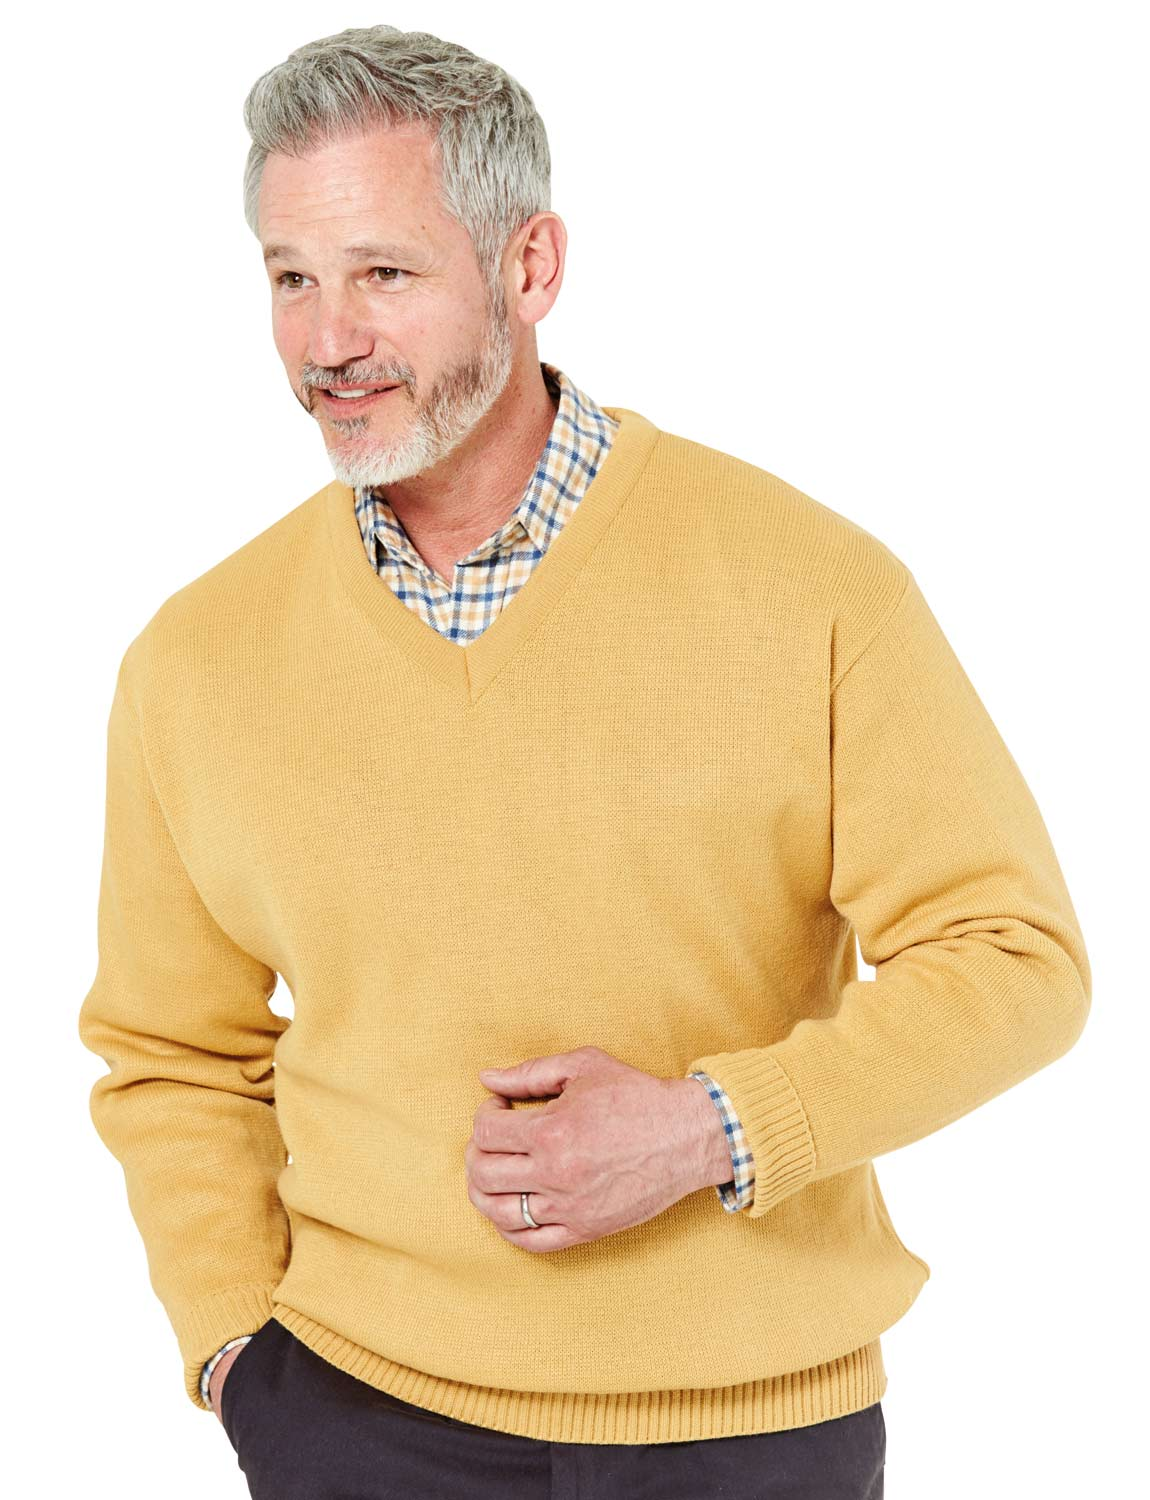 68ee62b1c36 Mens Chums Fine Gauge V Neck Sweater Jumper 2xl Camel. About this product.  Picture 1 of 2  Picture 2 of 2